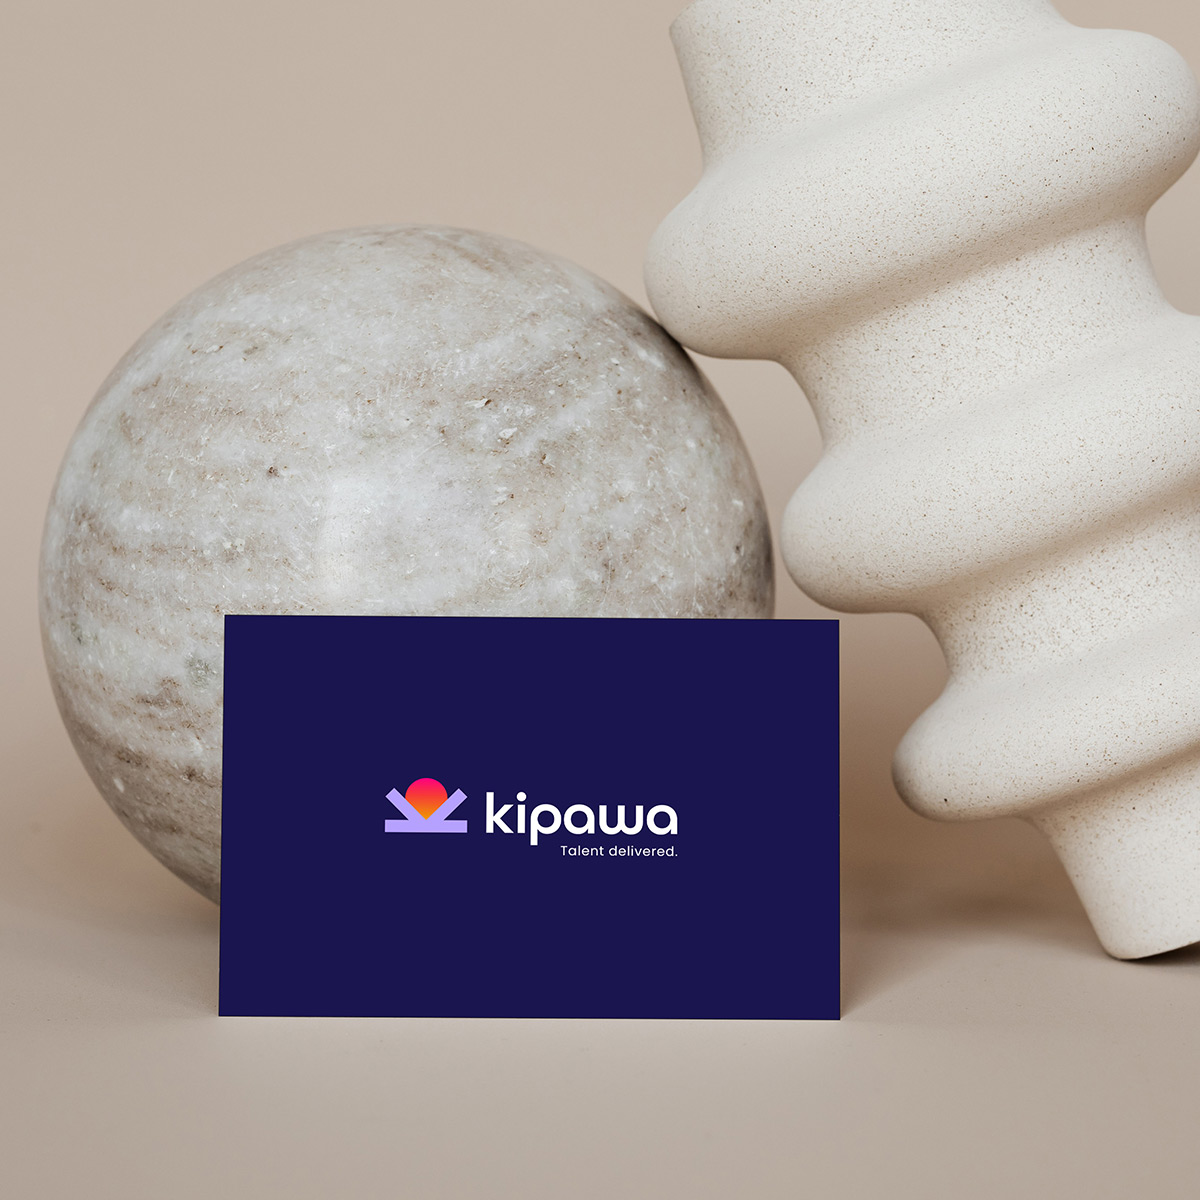 Business card for recruitment agency in Kenya propped up next to earthy vase